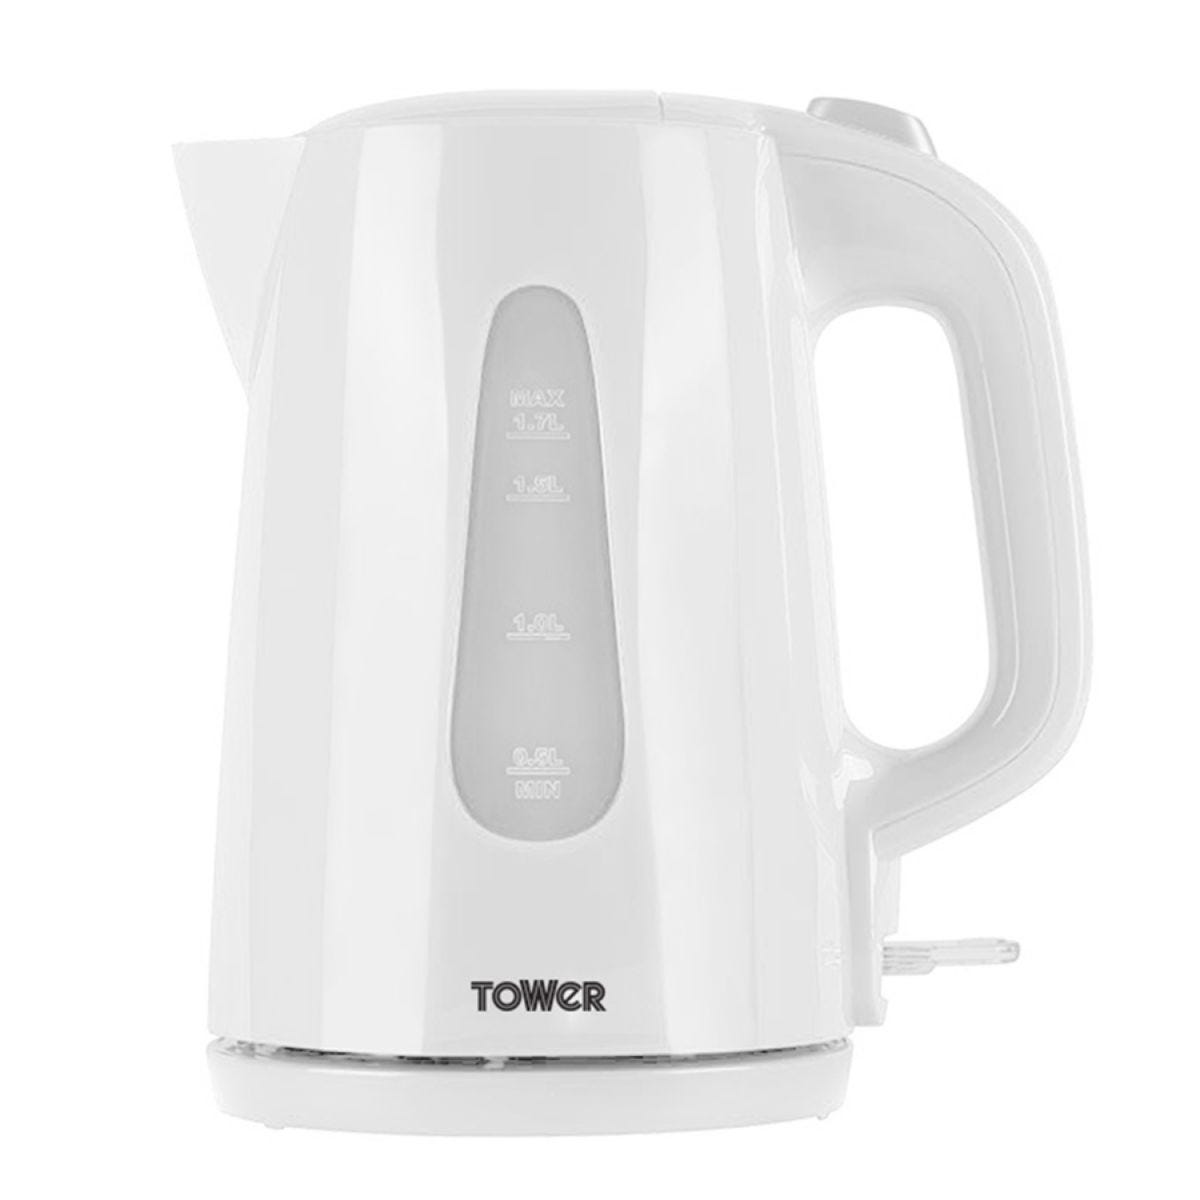 Tower 1.7L 360° Jug Kettle - White